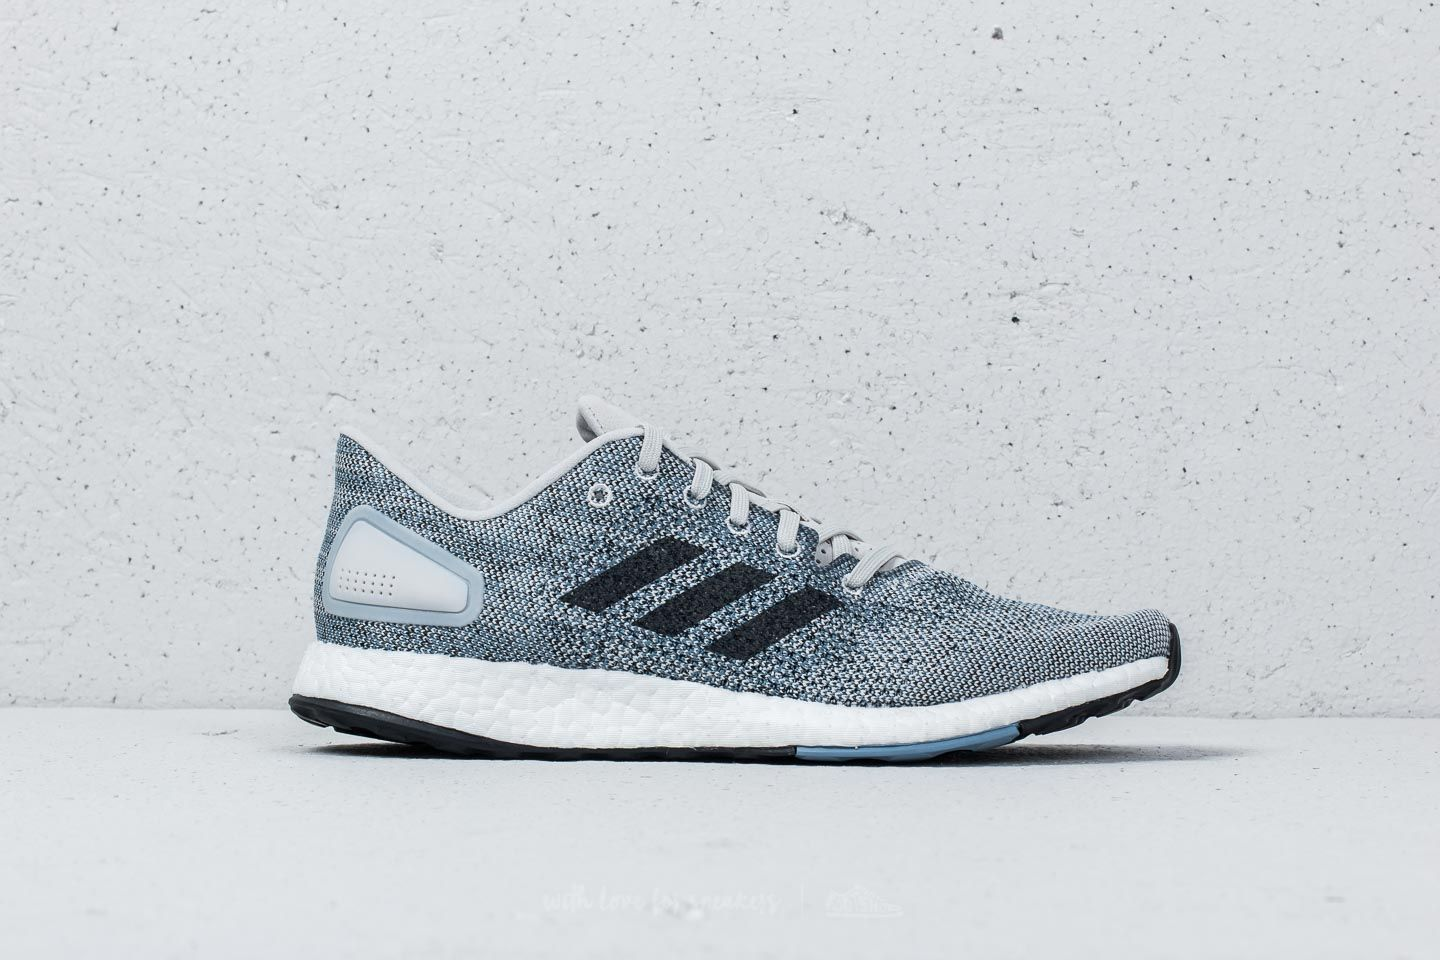 9ea437196 discount code for adidas pureboost dpr grey one ftw white raw grey at a  great price